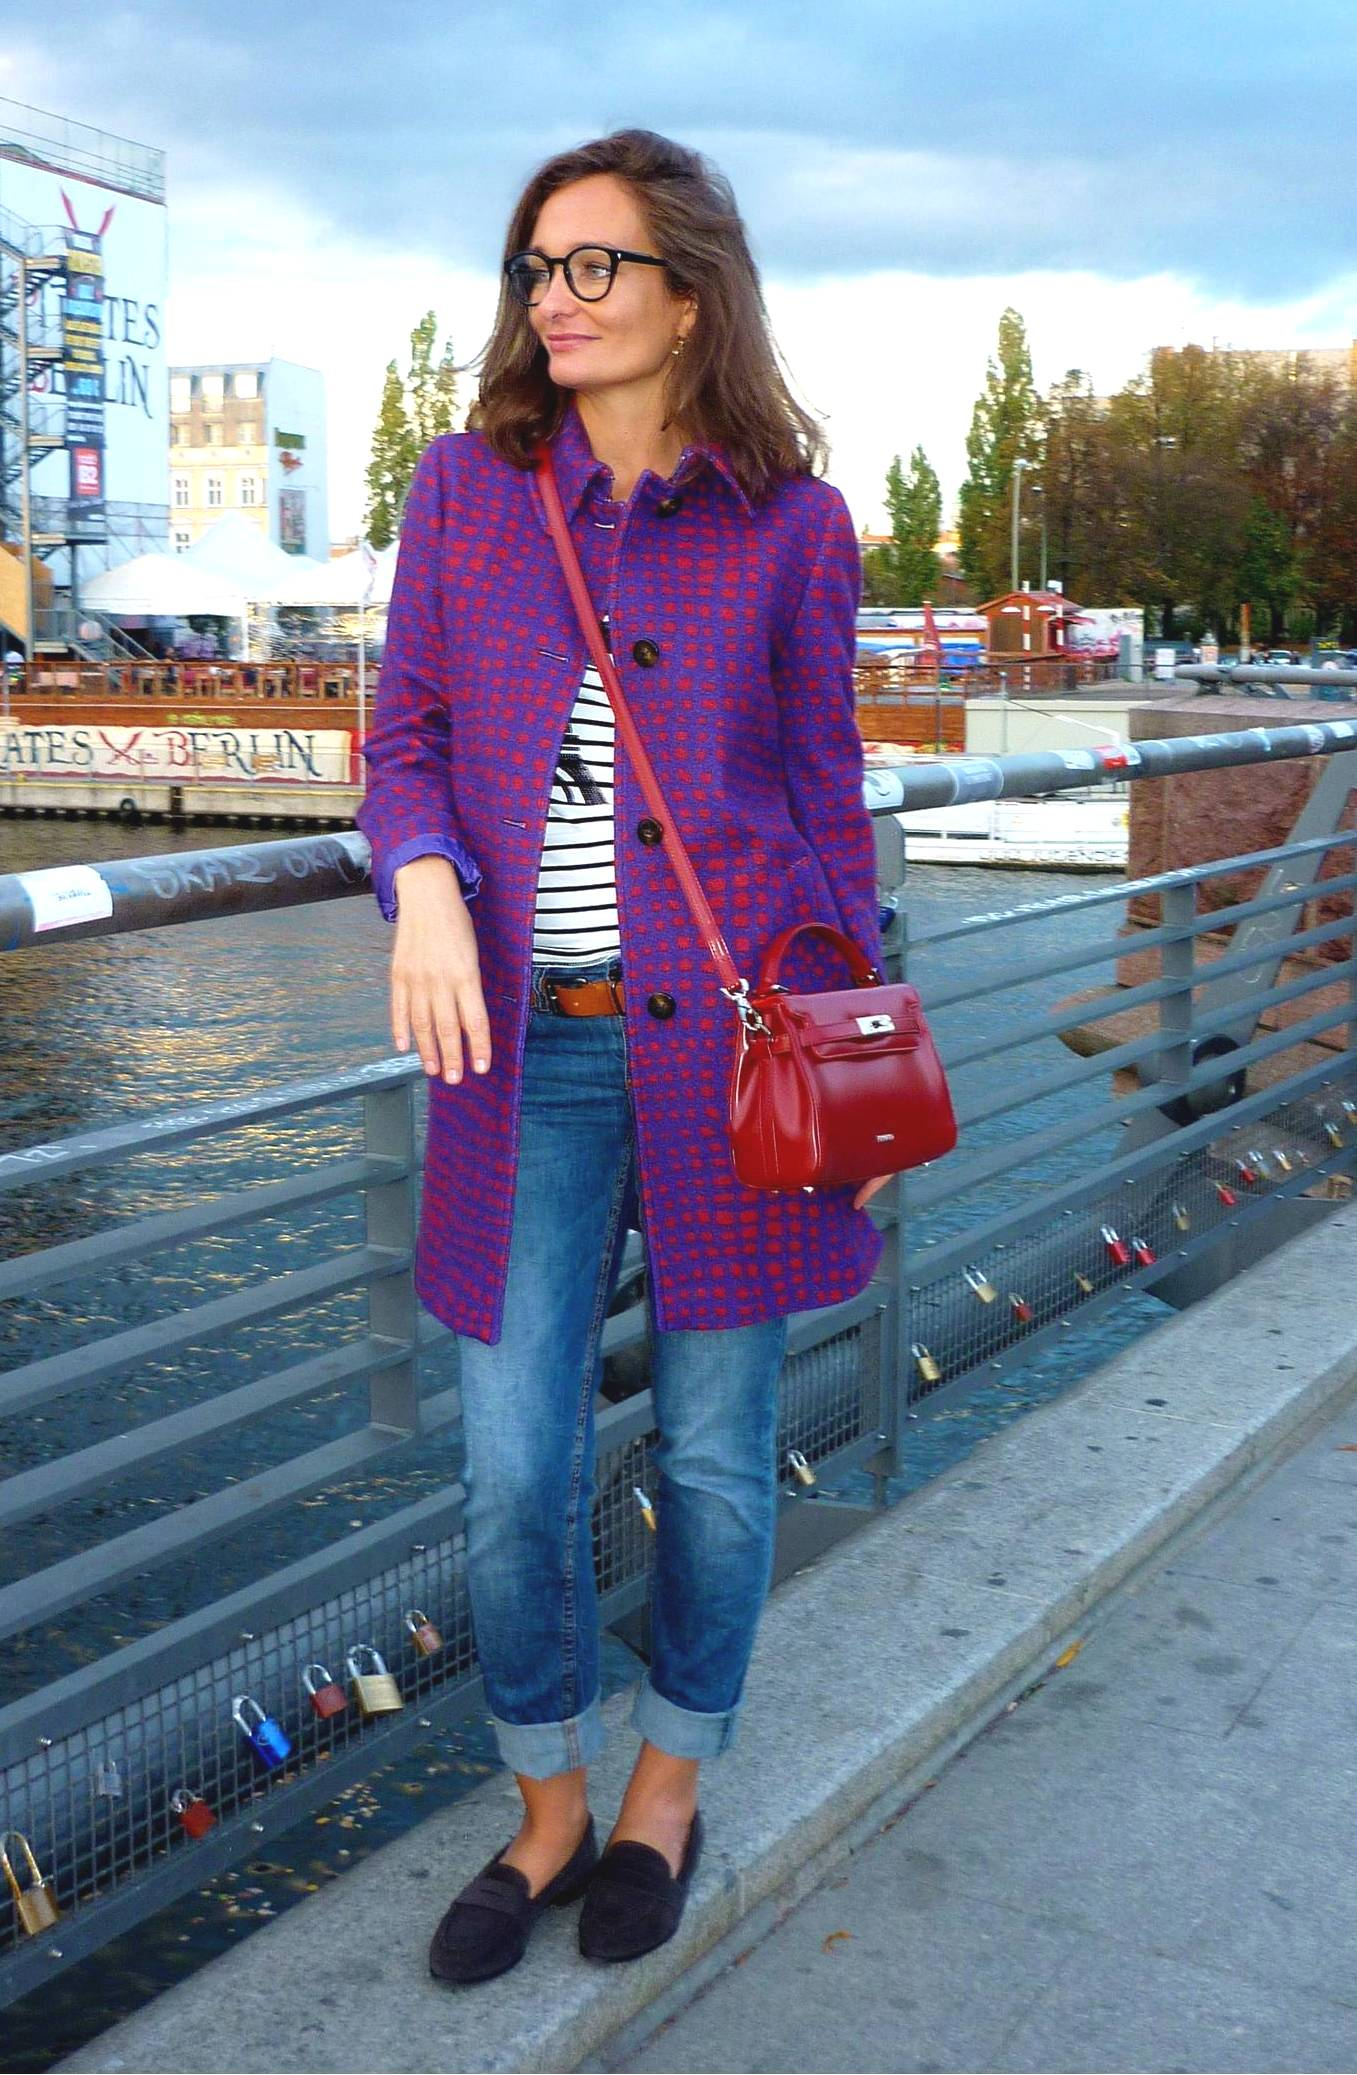 I am wearing: Gingham / Vichy coat from Max & Co, red bag from Picard, jeans from Stefanel, moccasins from AGL.